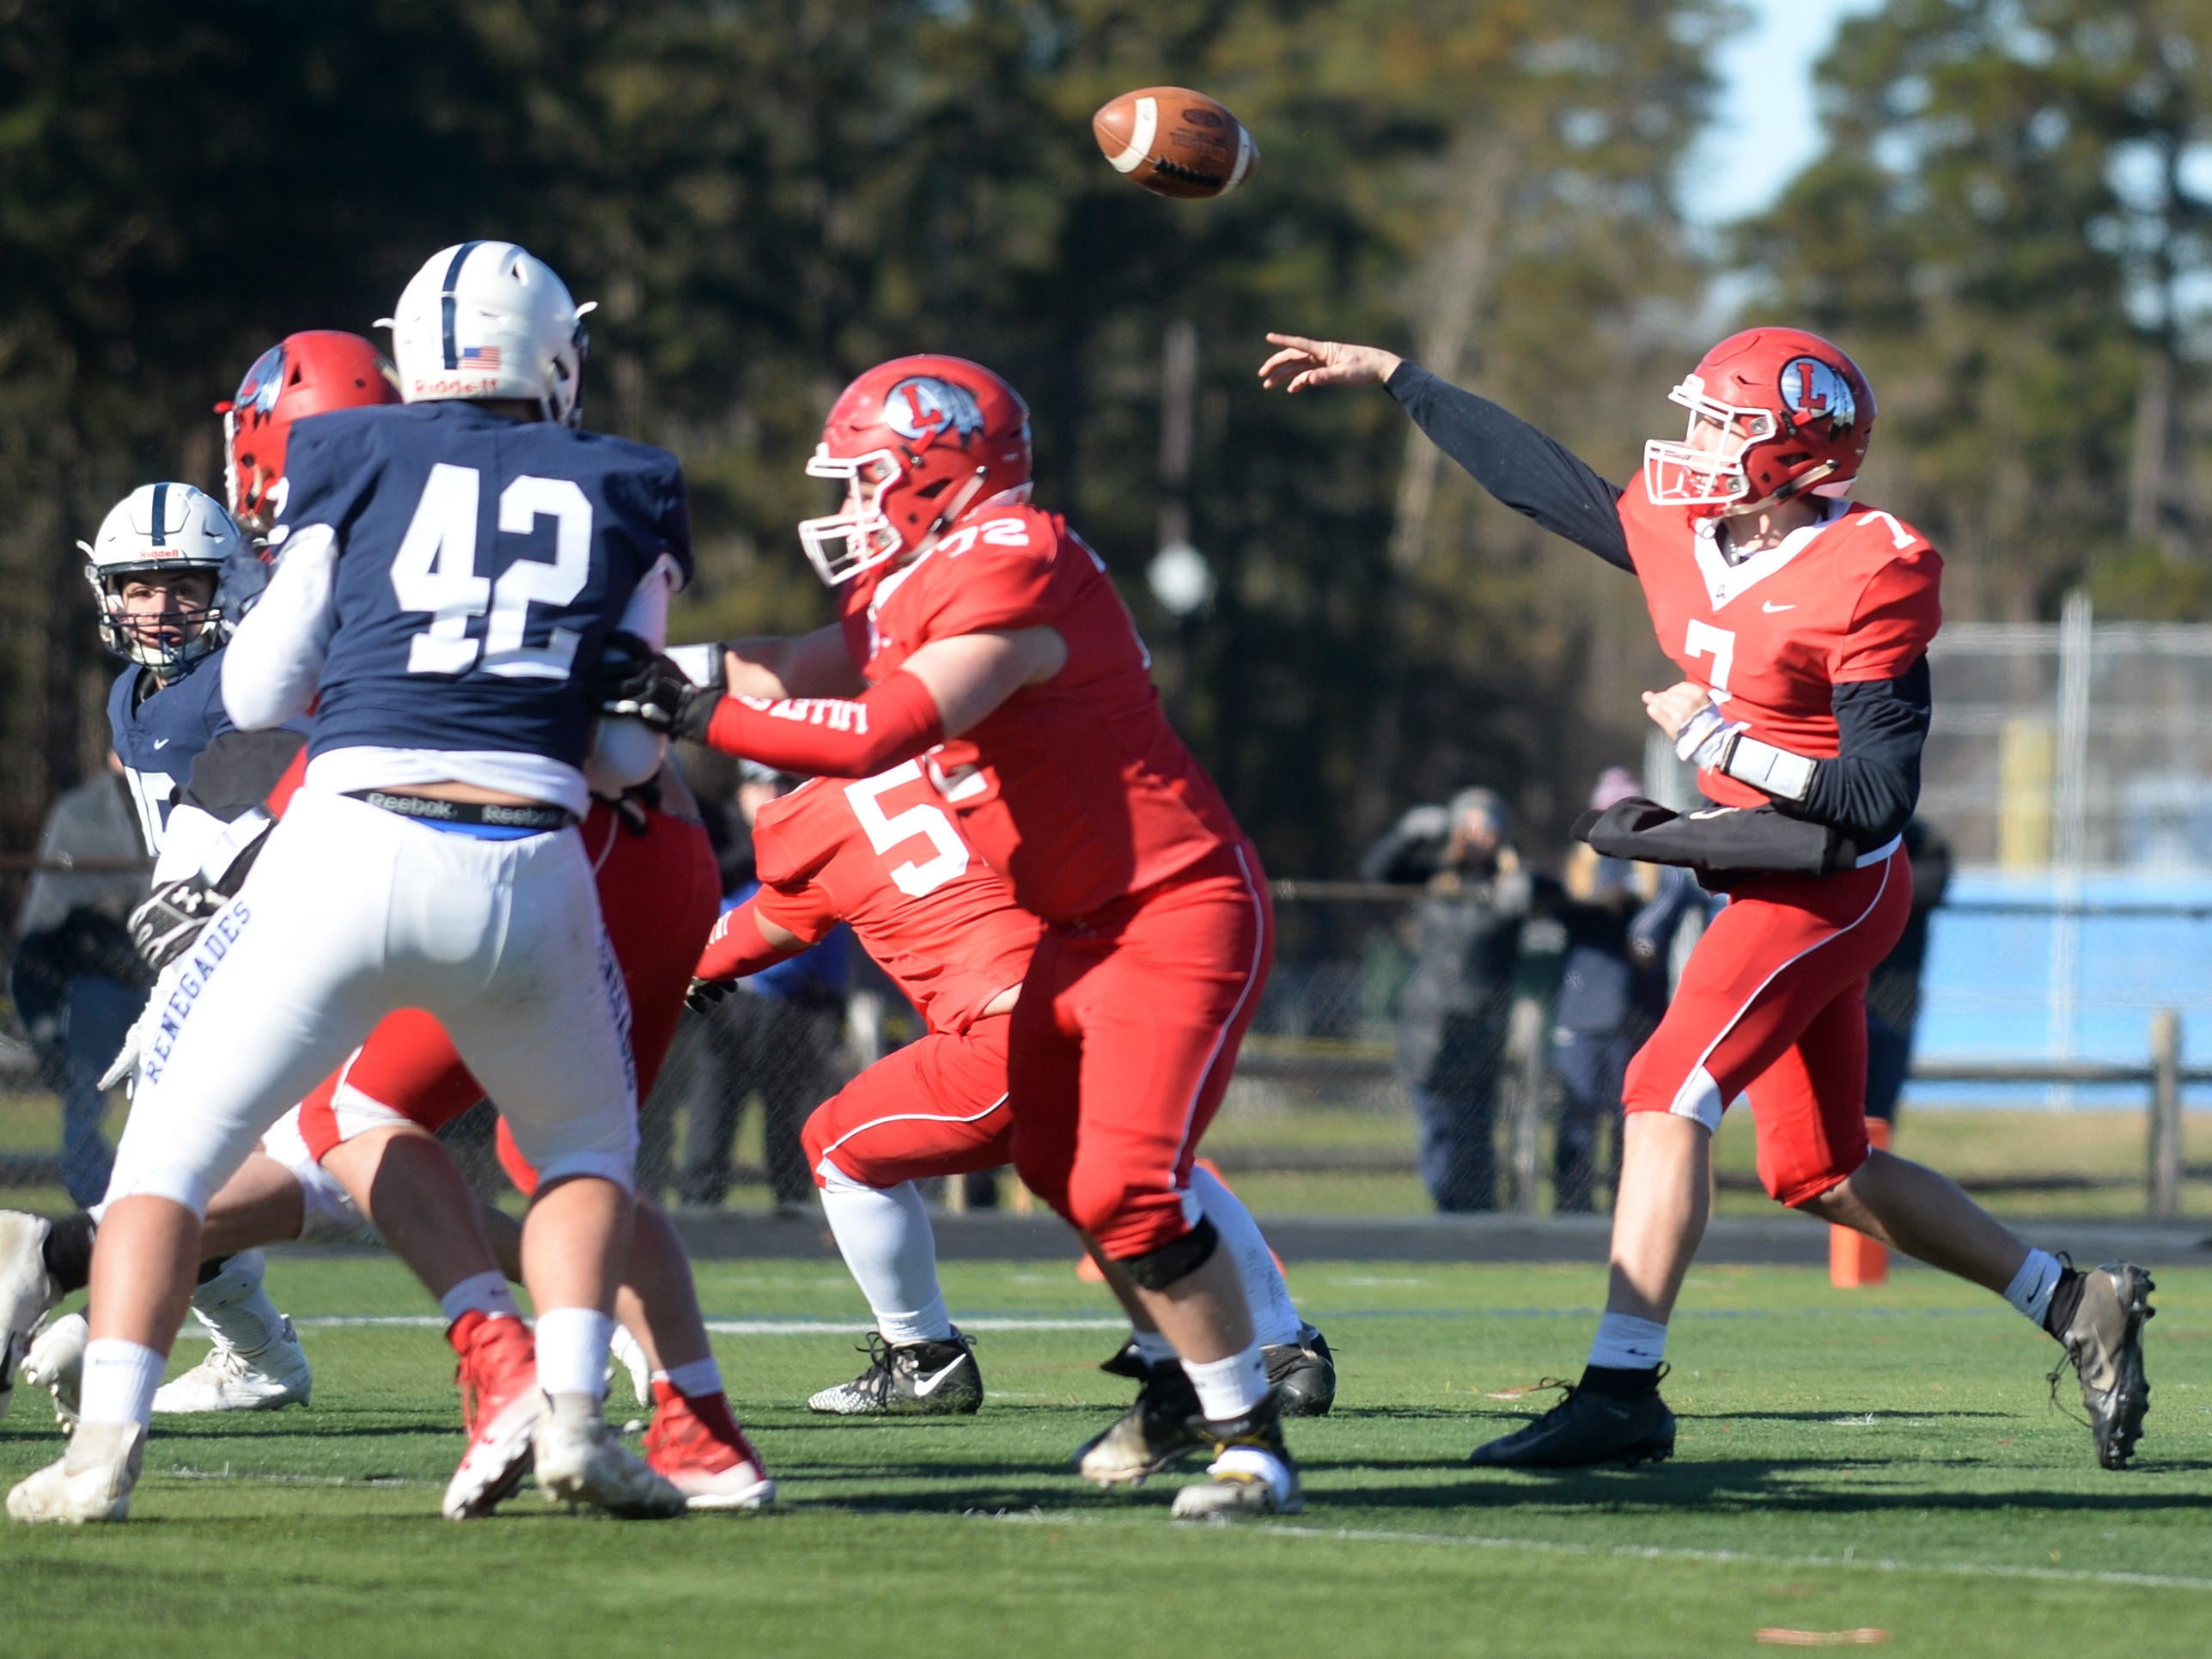 Lenape's Brady Long throws a pass during the Thanksgiving Day football game against Shawnee at Shawnee High School, Thursday, Nov. 22, 2018.